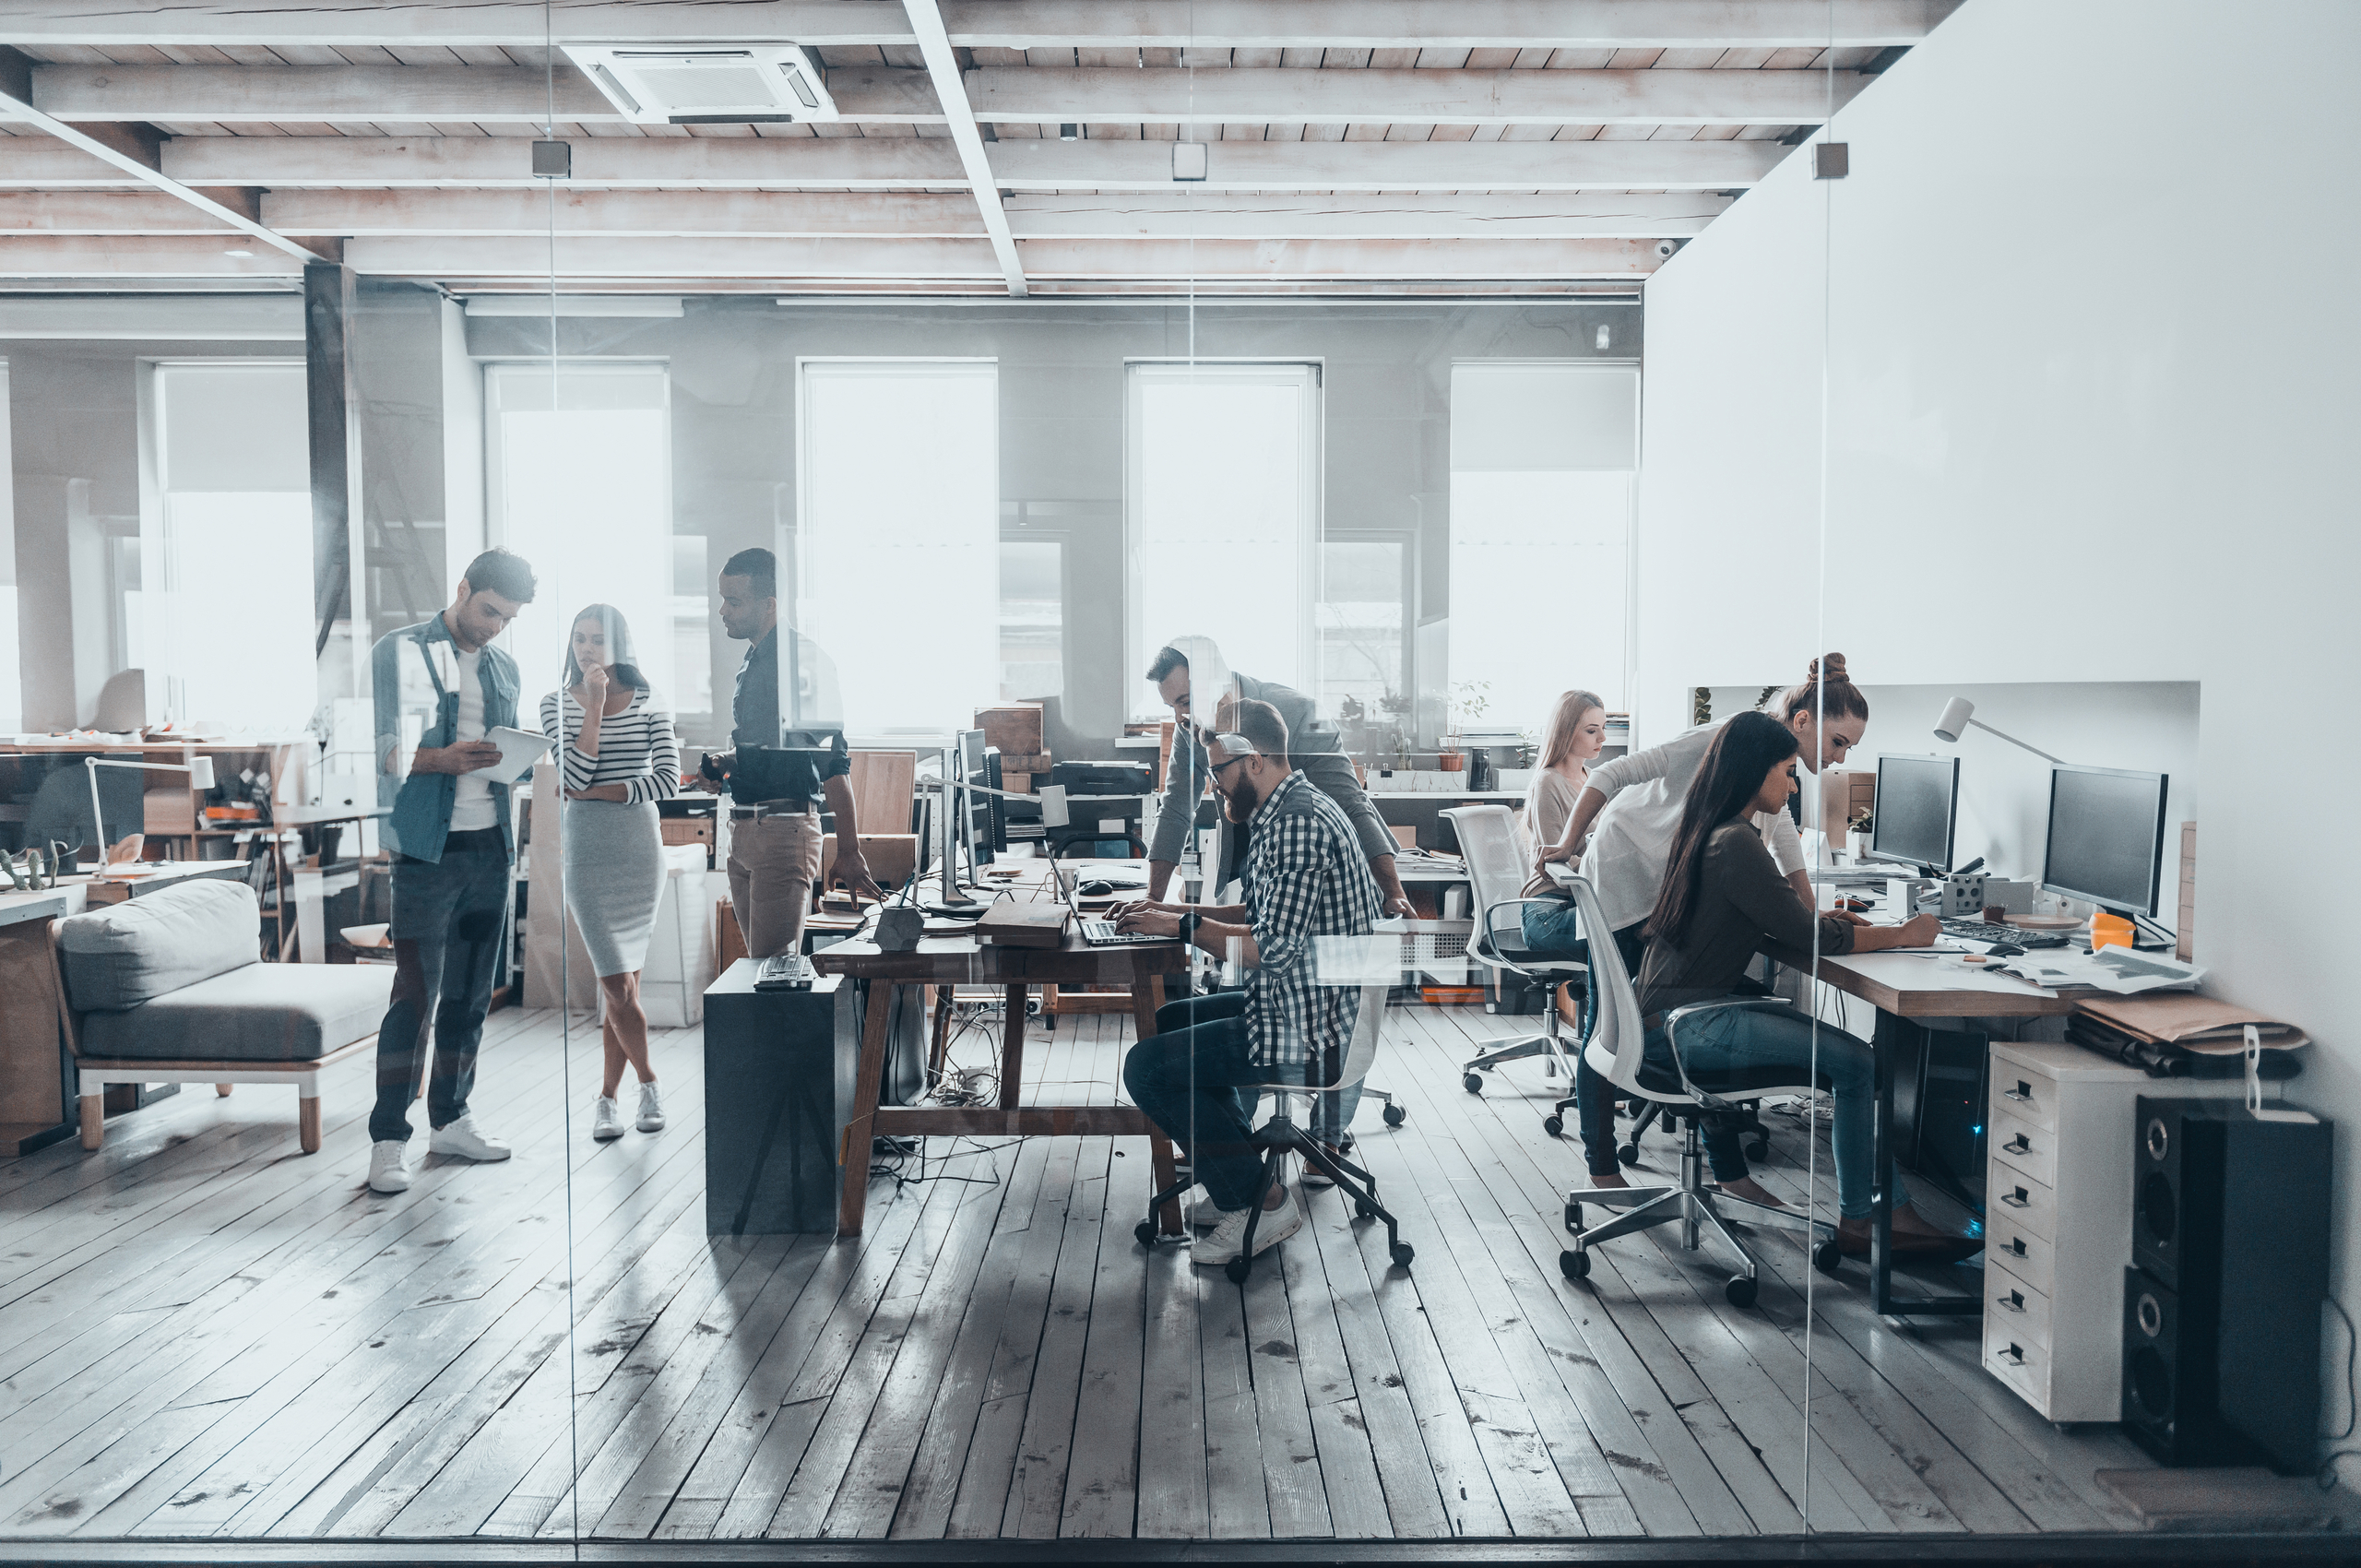 a group of young people work at desks in an open-plan office